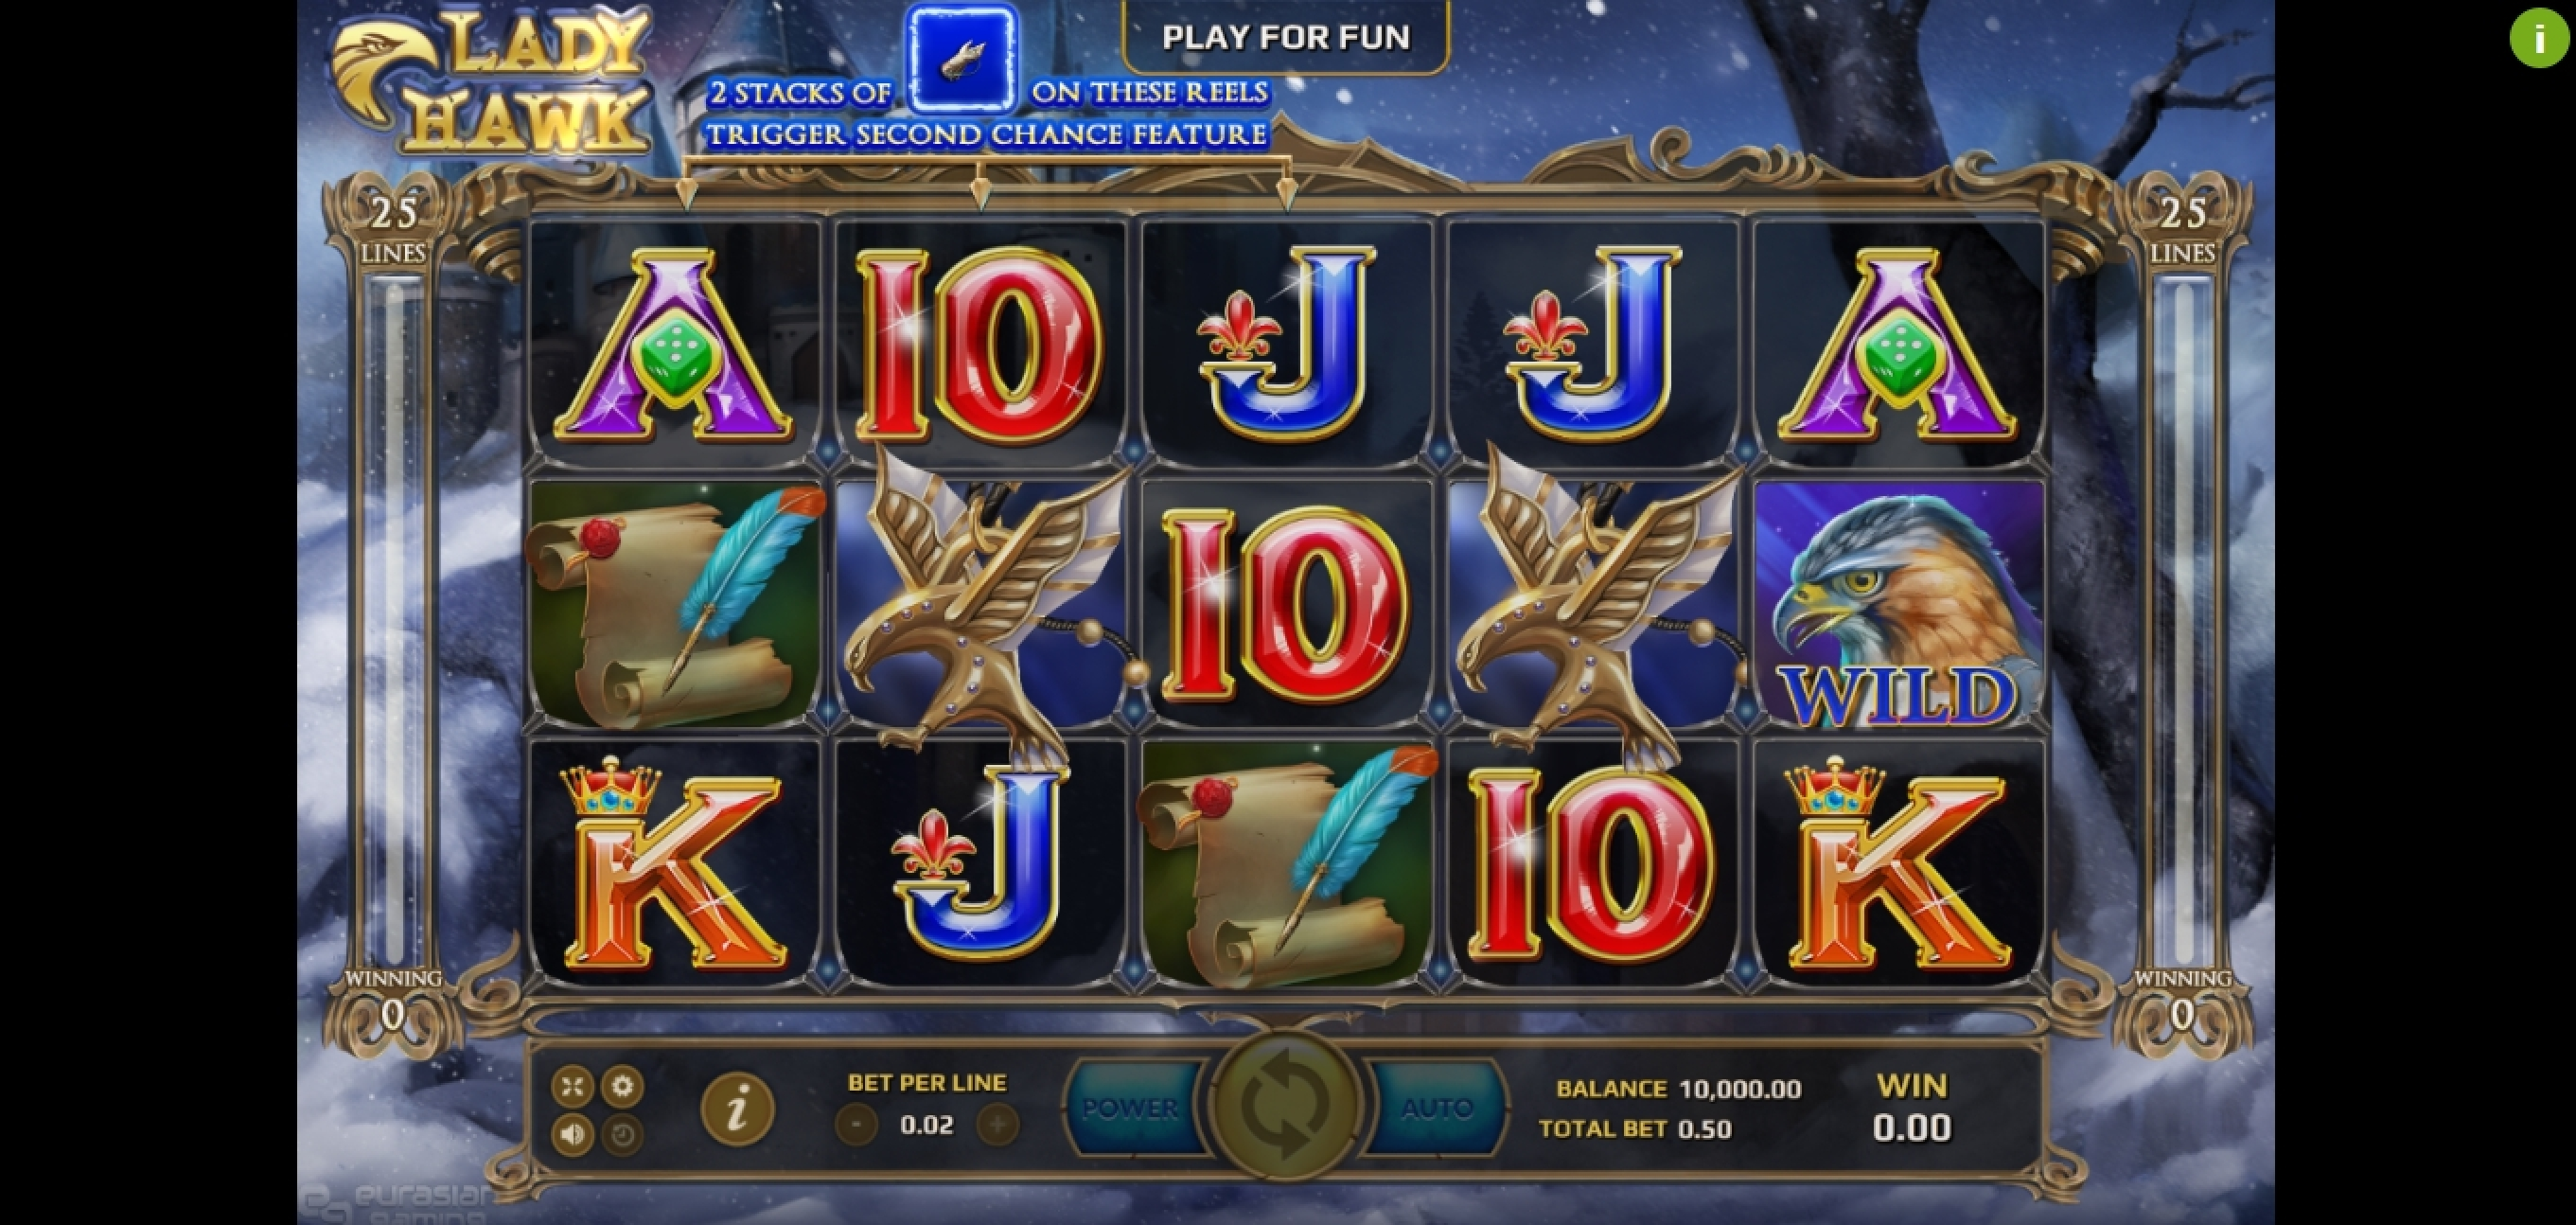 Reels in Lady Hawk Slot Game by EAgaming